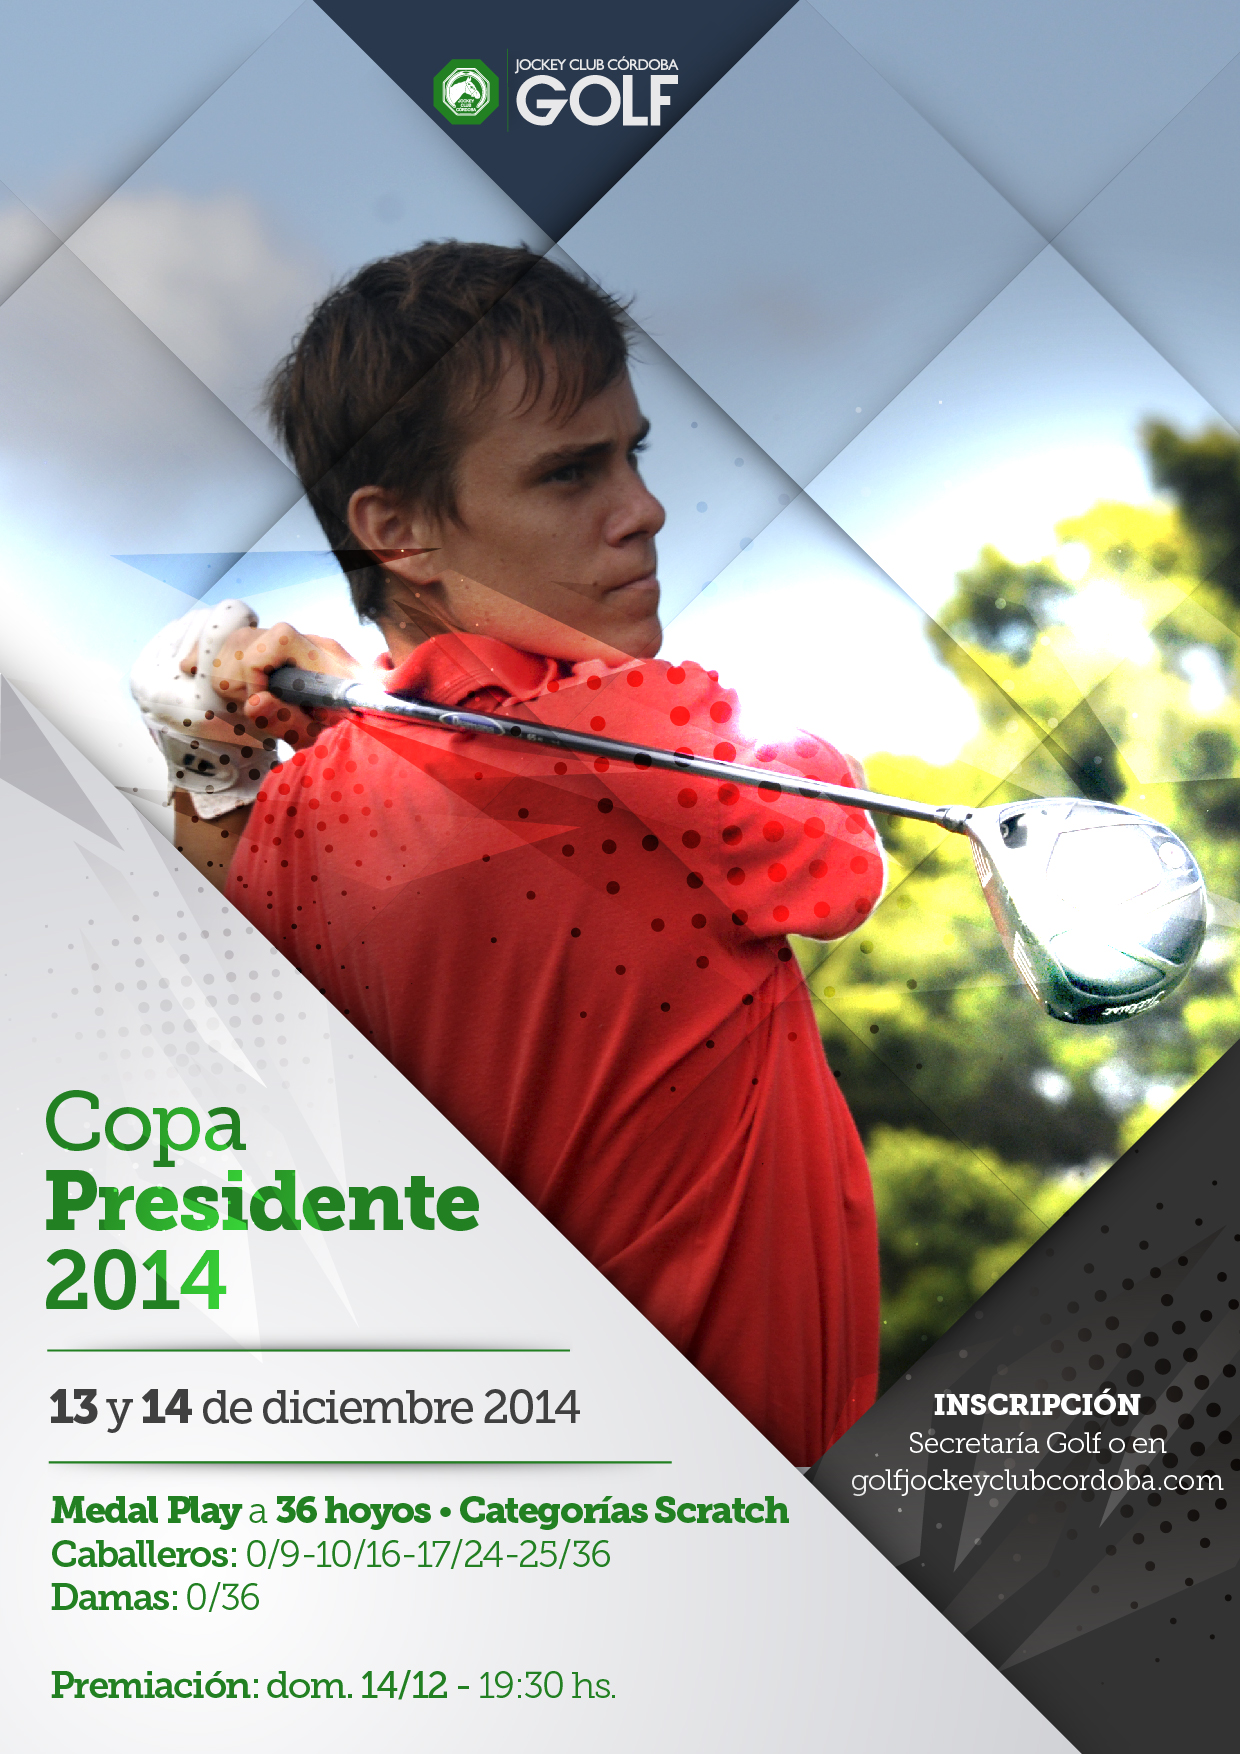 Jockey Club Córdoba Golf - Copa Presidente 2014-01-01